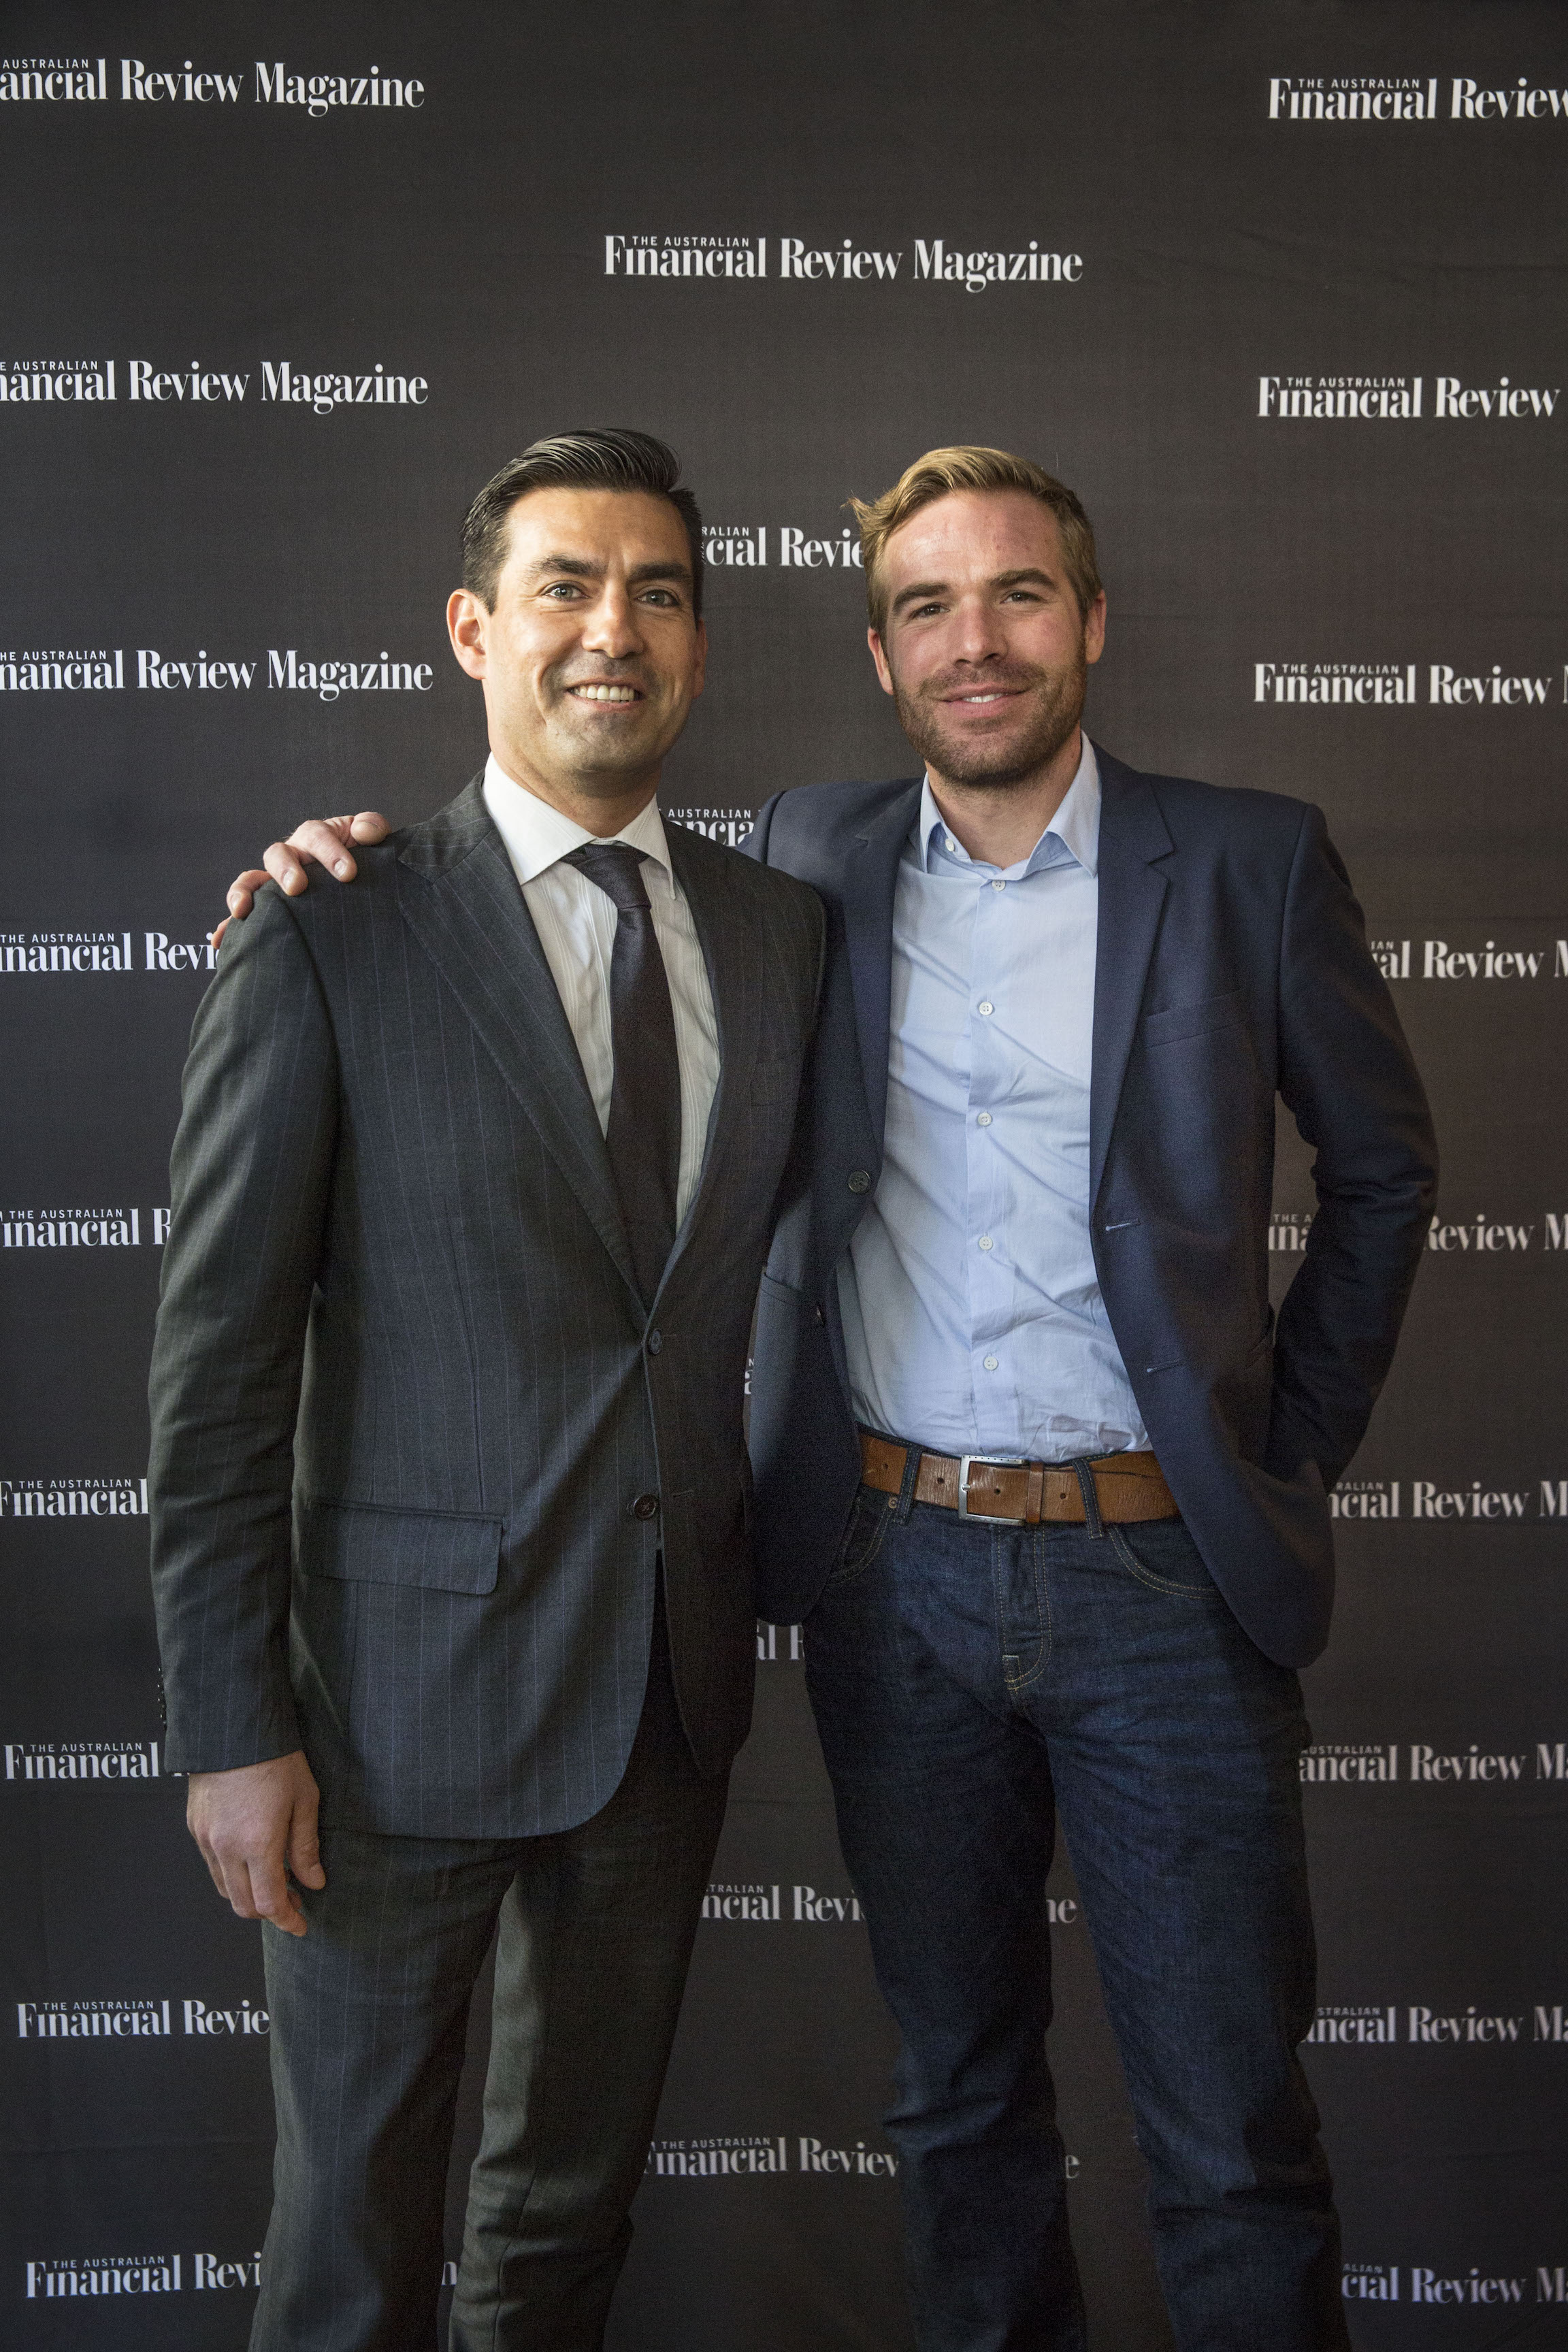 Joel Ruiz from Hublot and Mathieu Brunisholz from Breitling attend the AFR Watch issue launch at 44 Bridge Street on July 27, 2016 in Sydney, Australia. (Photo by Jessica Hromas:Fairfax Media)